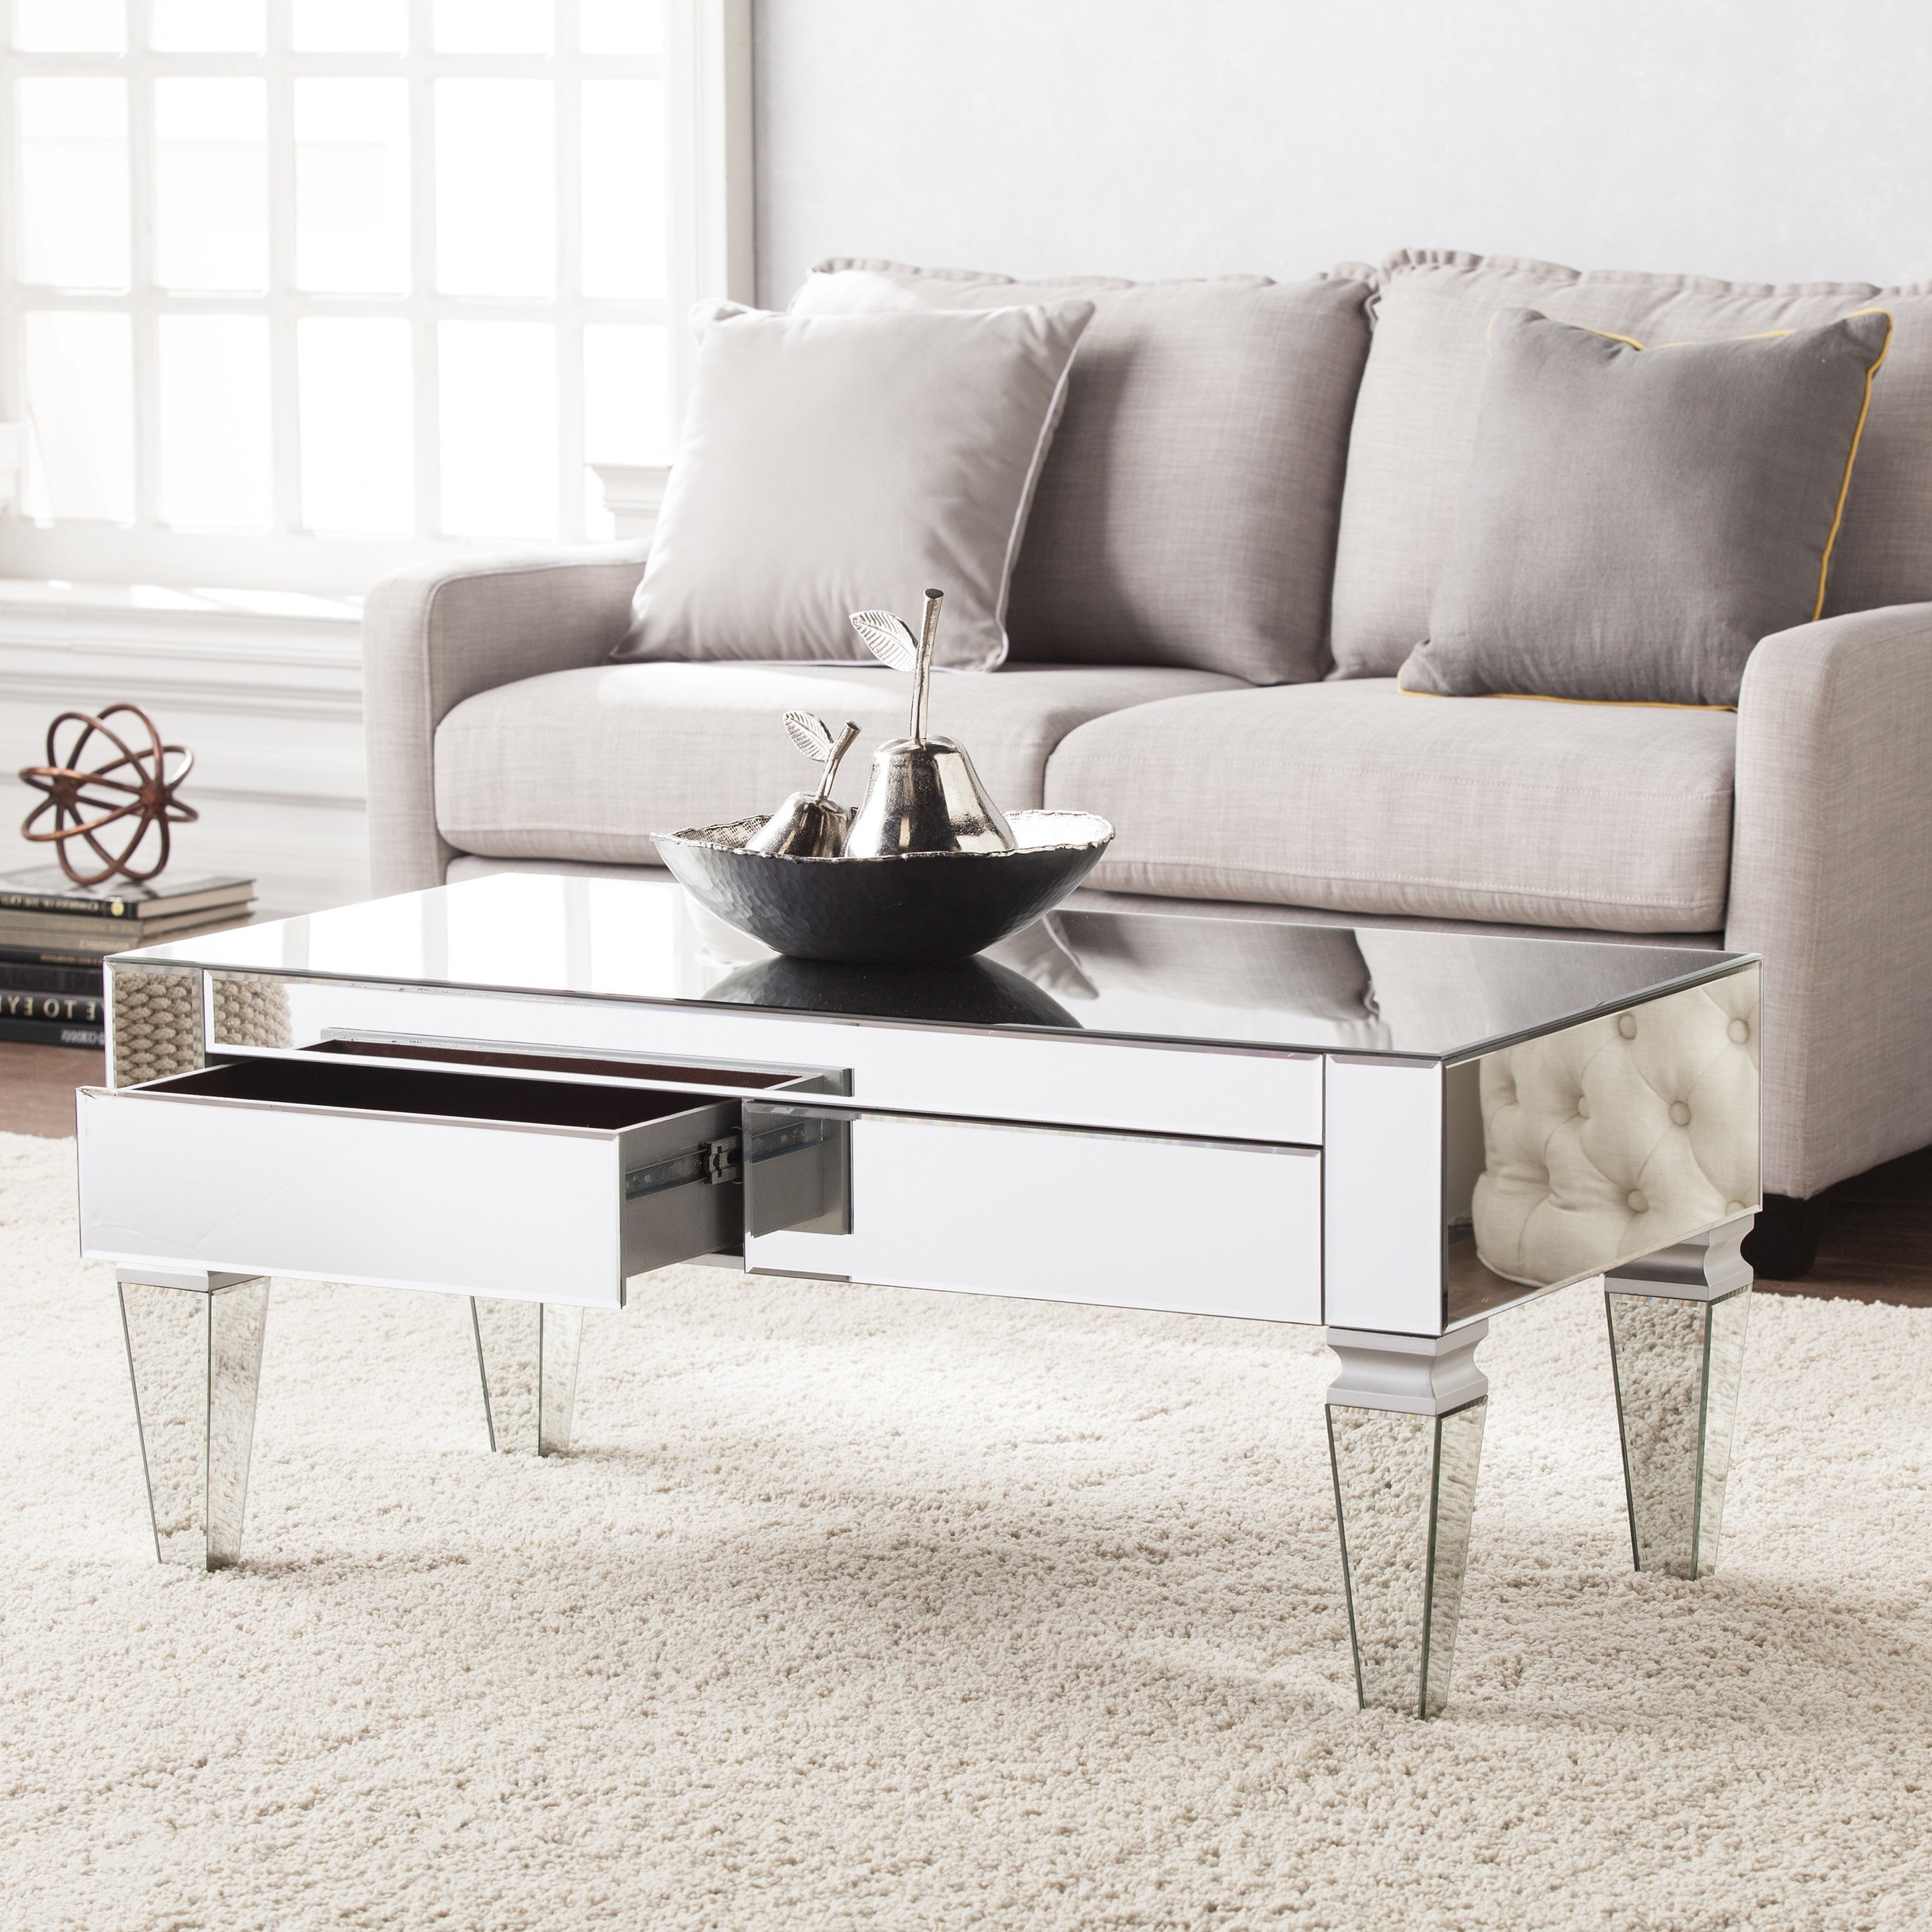 2019 Upton Home Dalton Mirrored Cocktail Tables Intended For Silver Orchid Olivia Contemporary Mirrored Rectangular Cocktail Table (View 2 of 20)